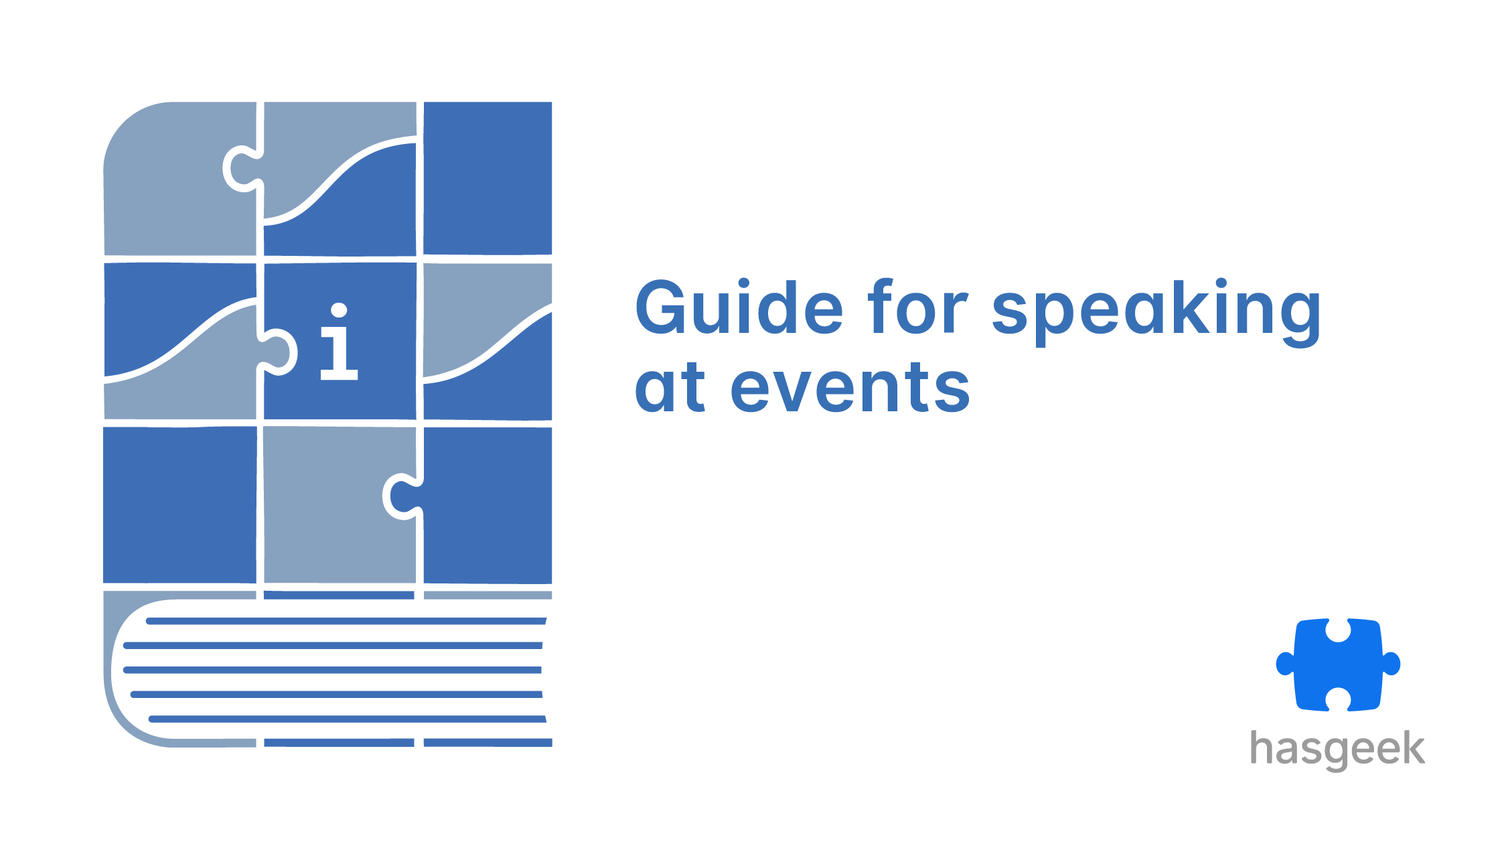 A guide to prepare for speaking at events